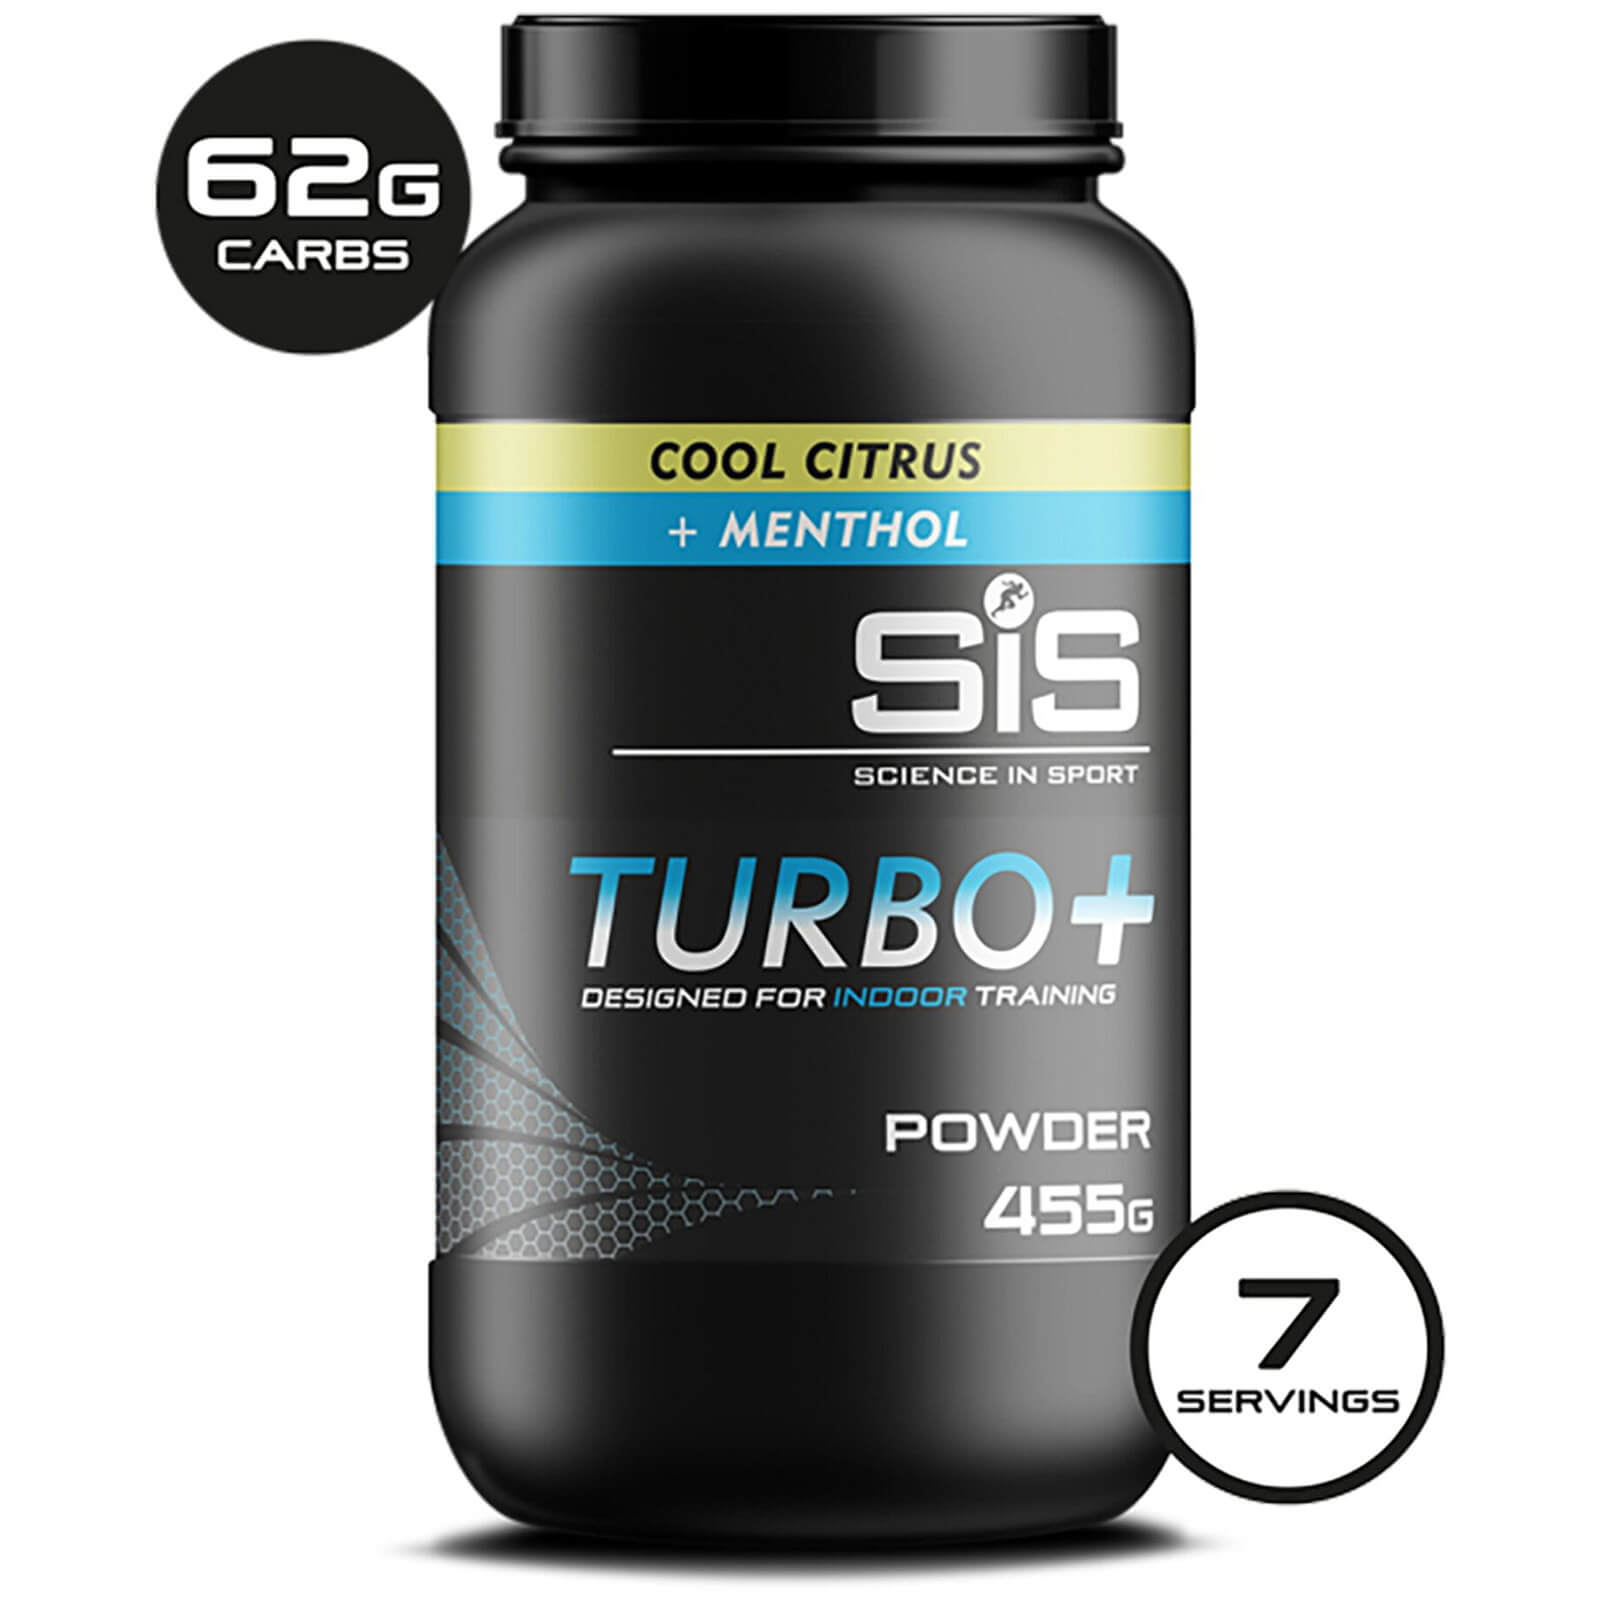 Science in Sport Turbo+ Energy Drink Powder 455g Tub - Cool Citrus